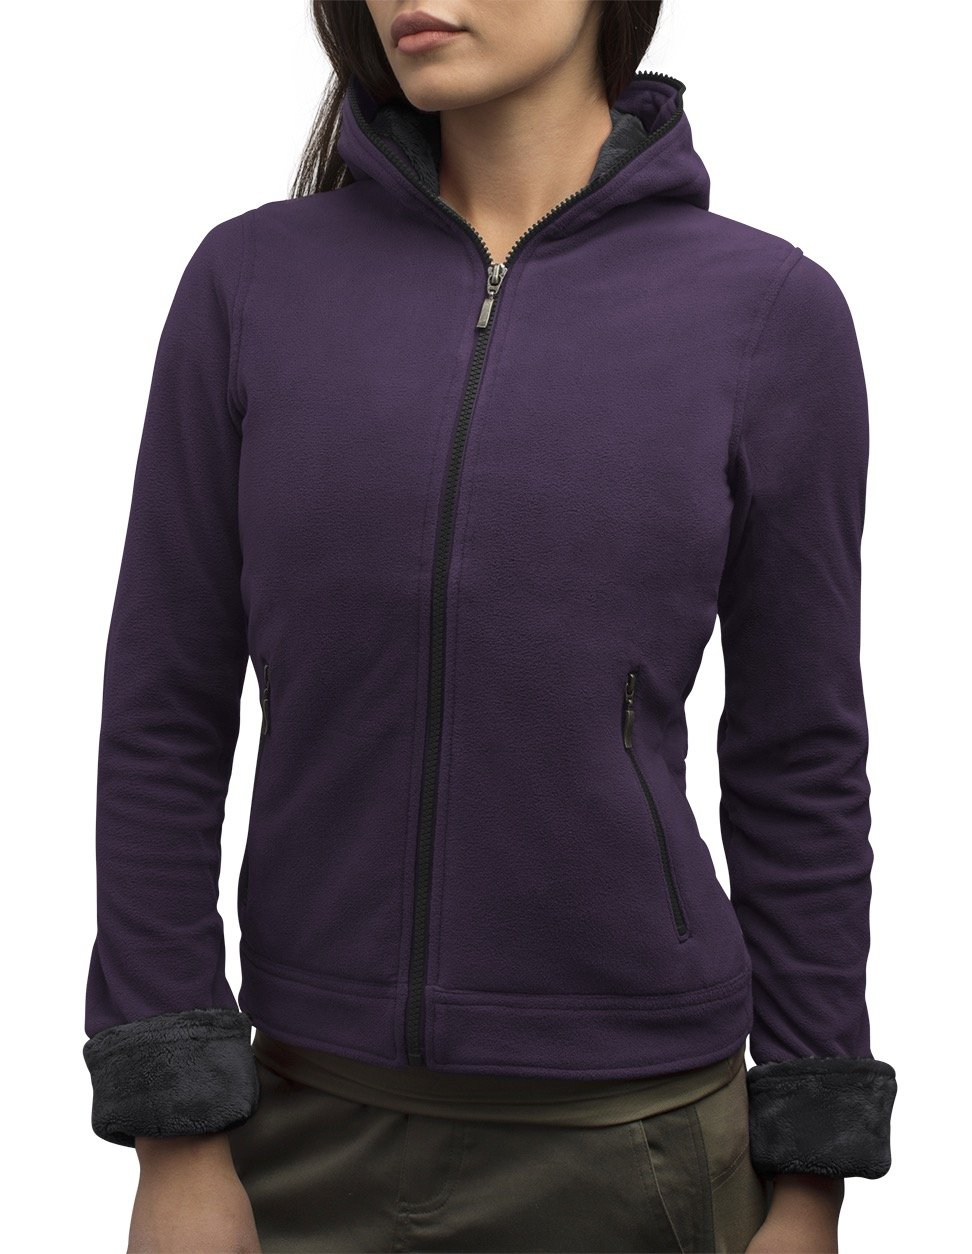 SCOTTeVEST Chloe Hoodie - 14 Pockets - Travel Clothing, Pickpocket Proof DAR L by SCOTTeVEST